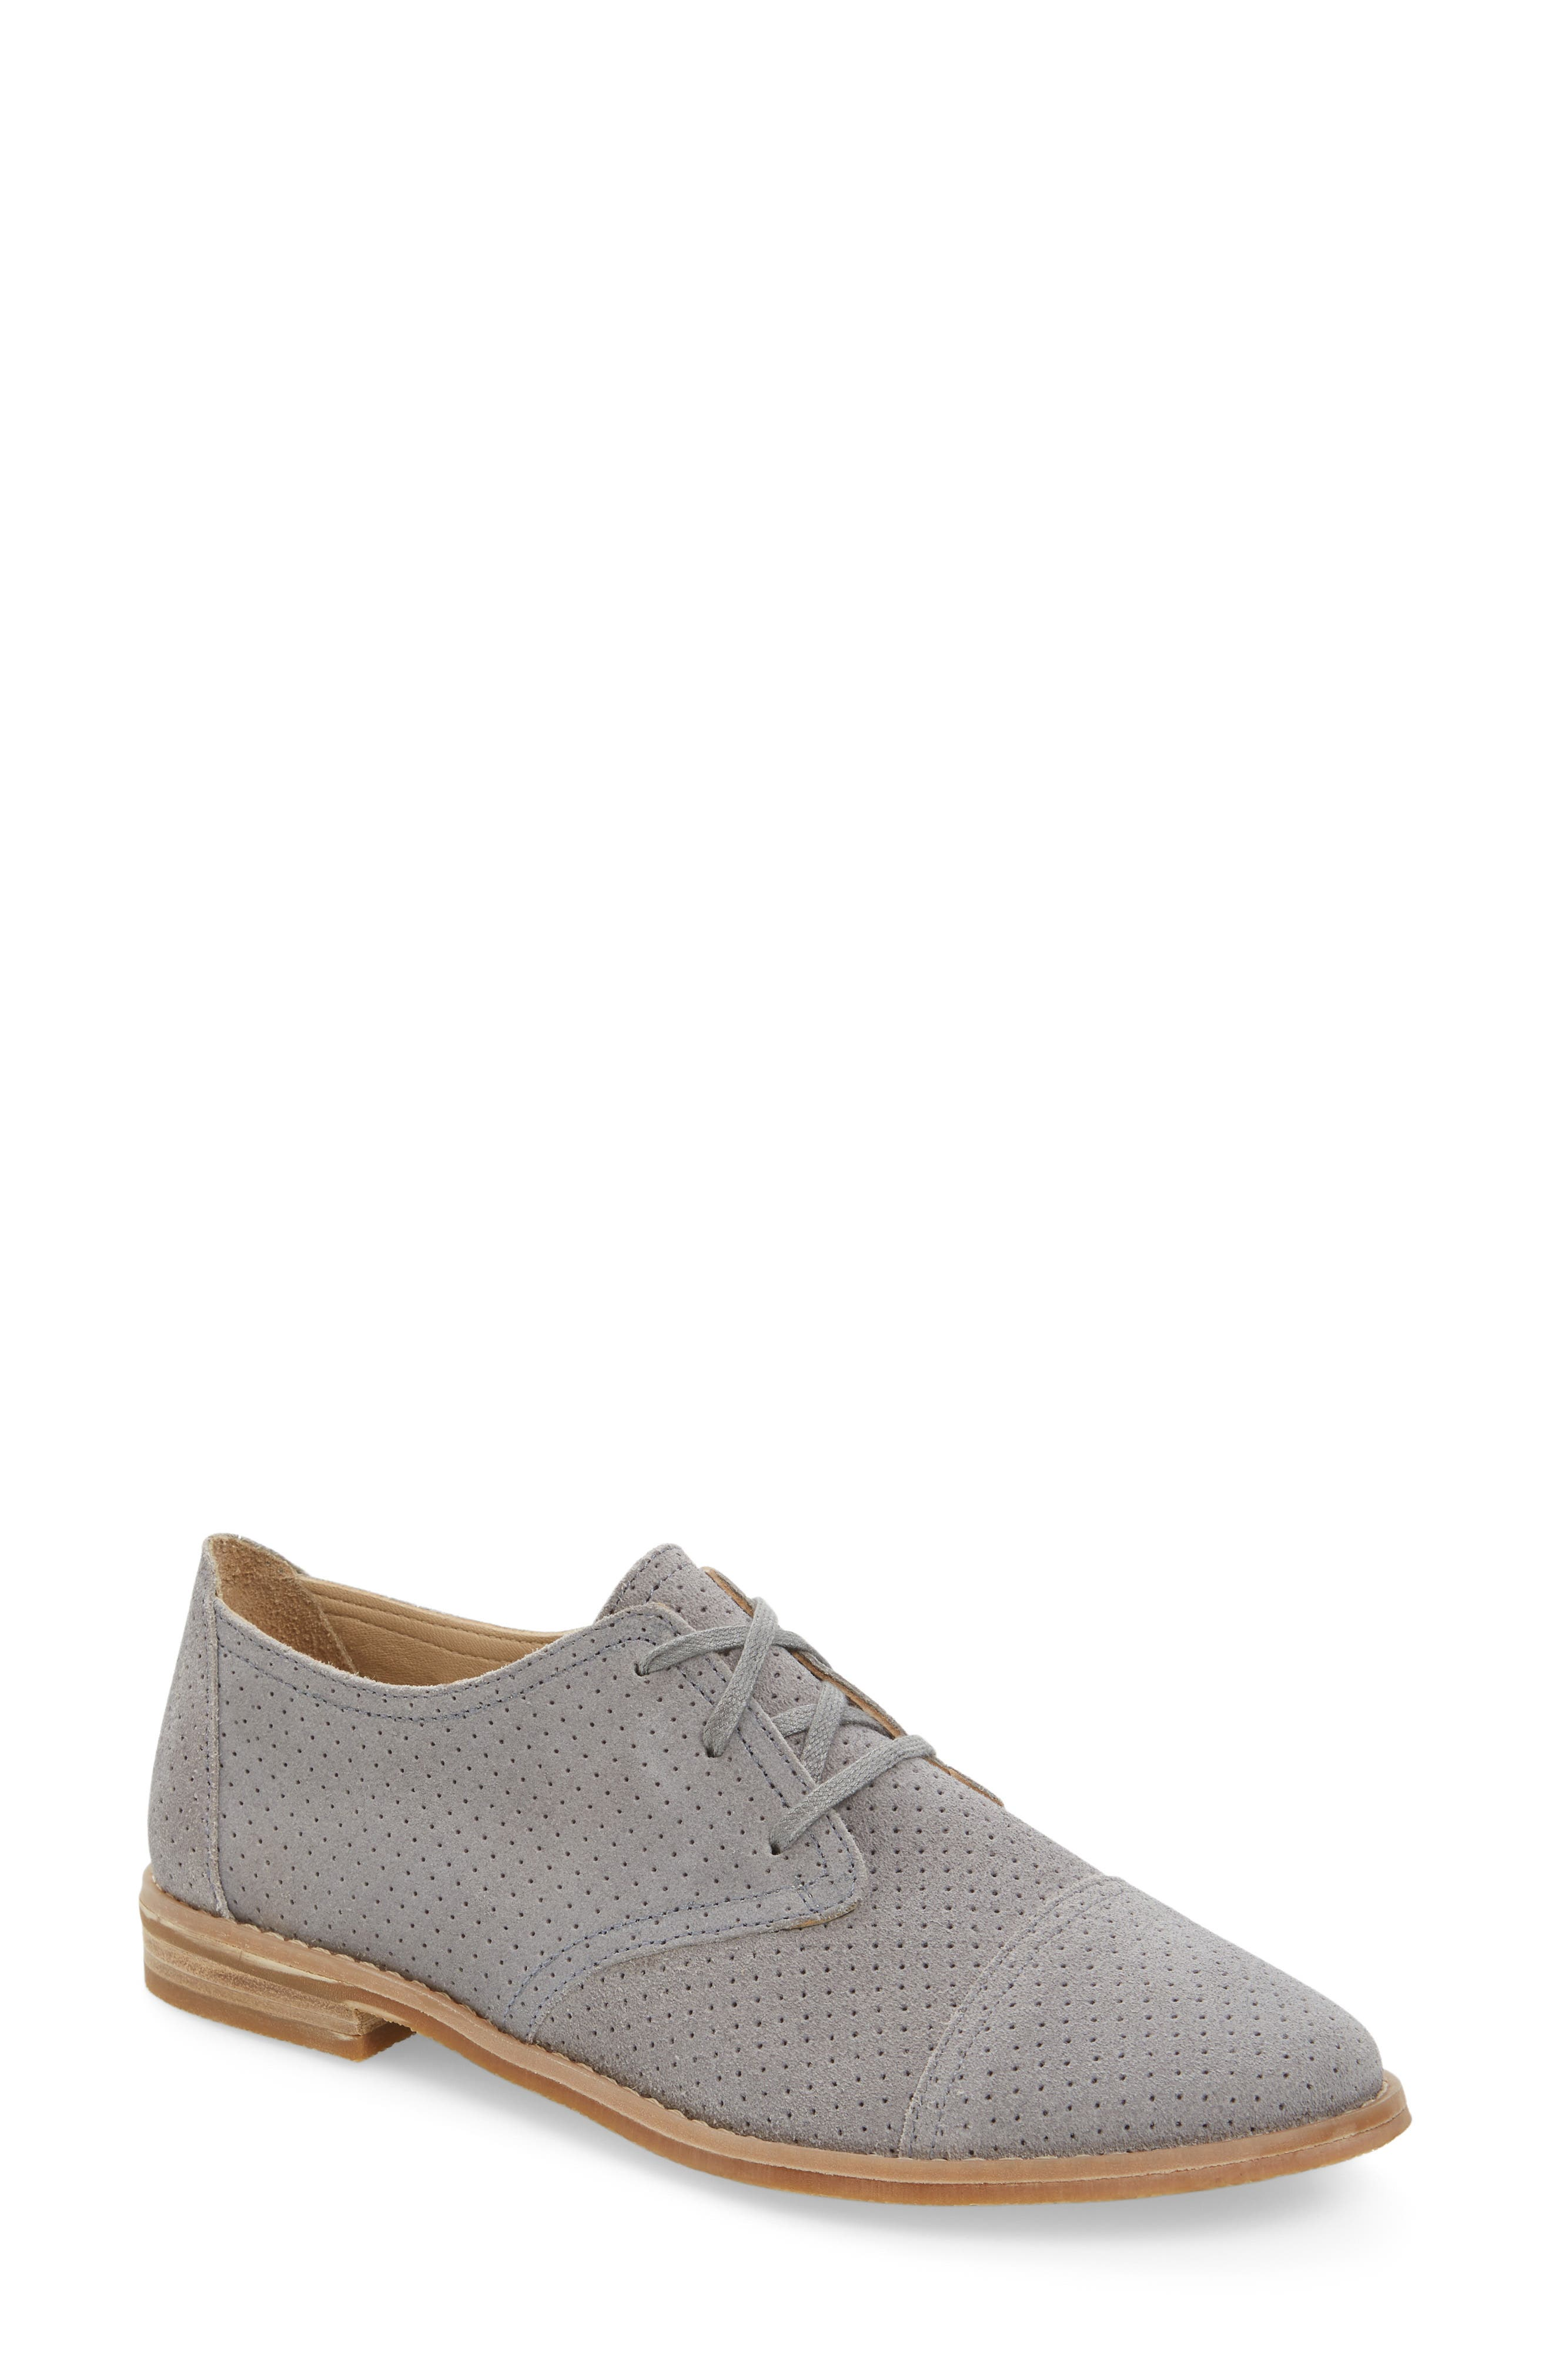 HUSH PUPPIES<SUP>®</SUP>,                             Hush Puppies Aiden Clever Oxford,                             Main thumbnail 1, color,                             025